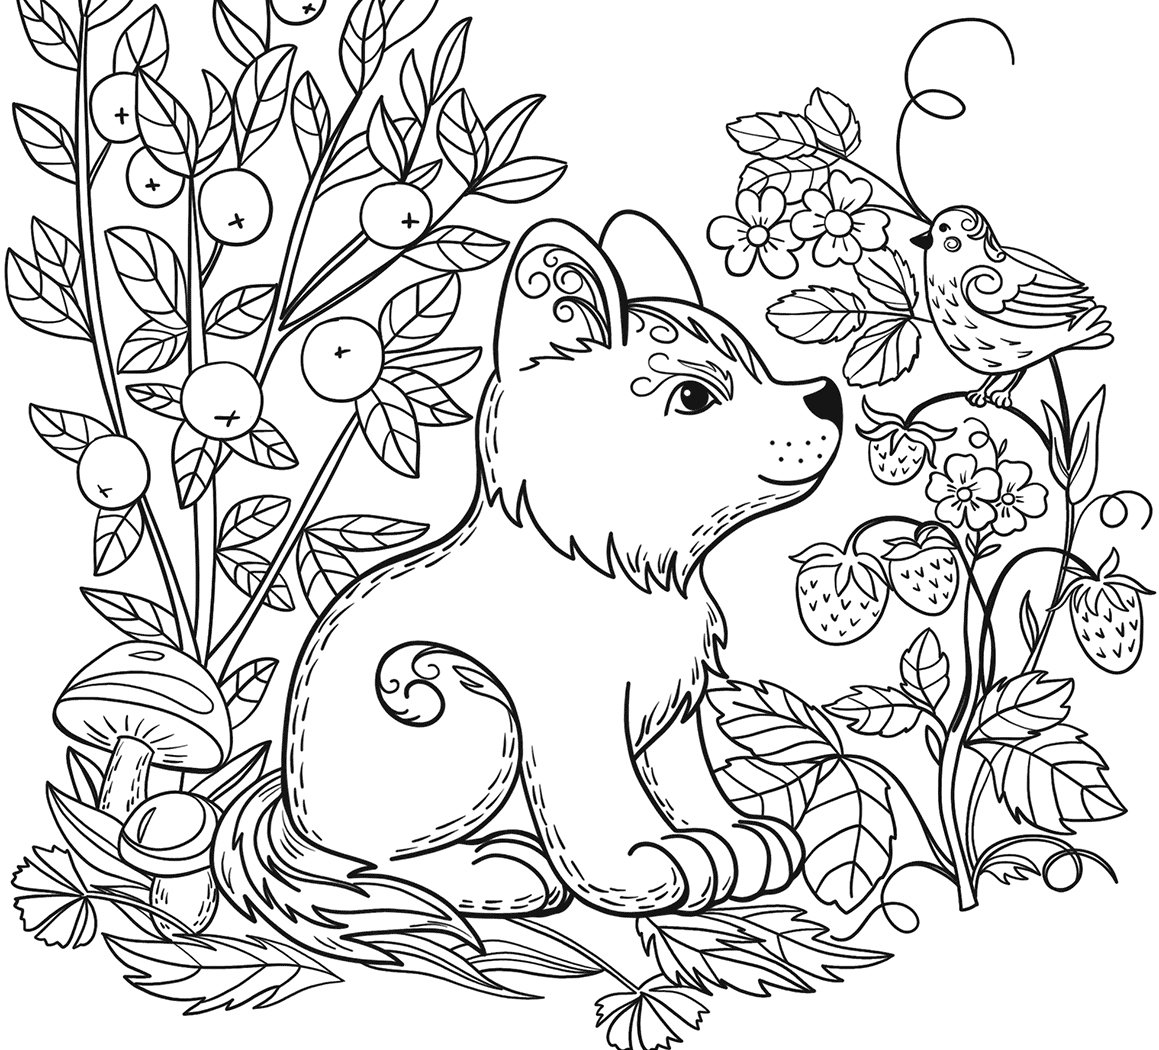 Free Animal Coloring Pages Fresh Wild Gallery Printable Sheet 1159 - Free Printable Wild Animal Coloring Pages